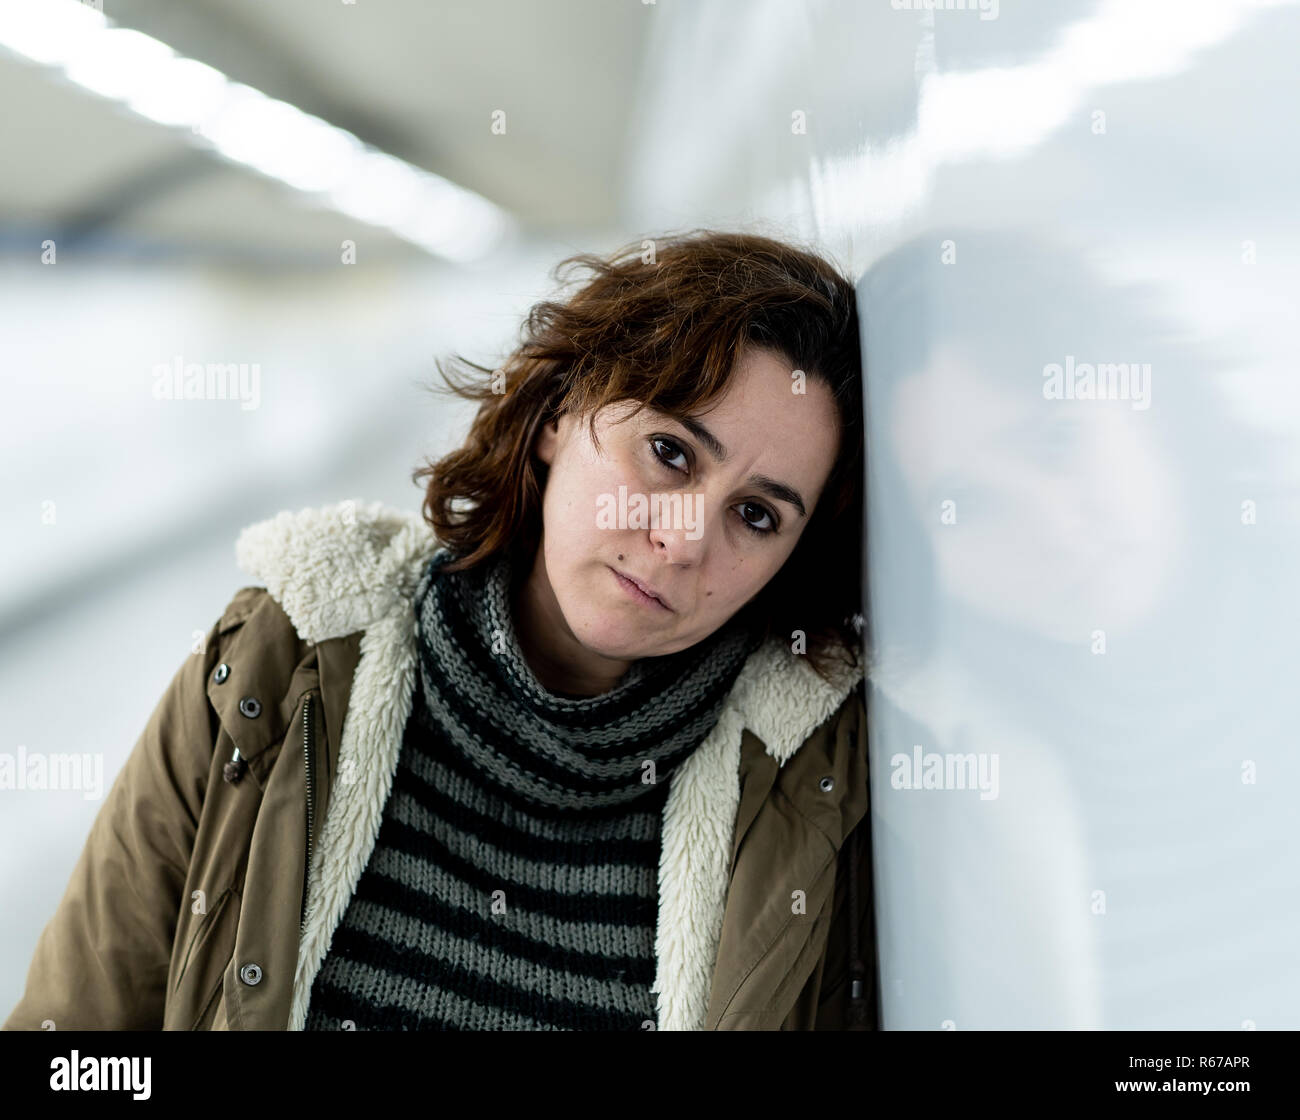 Hopeless and exhausted woman suffering depression and anxiety in subway tunnel in Work-life balance issues Negative body image Financial troubles and  Stock Photo